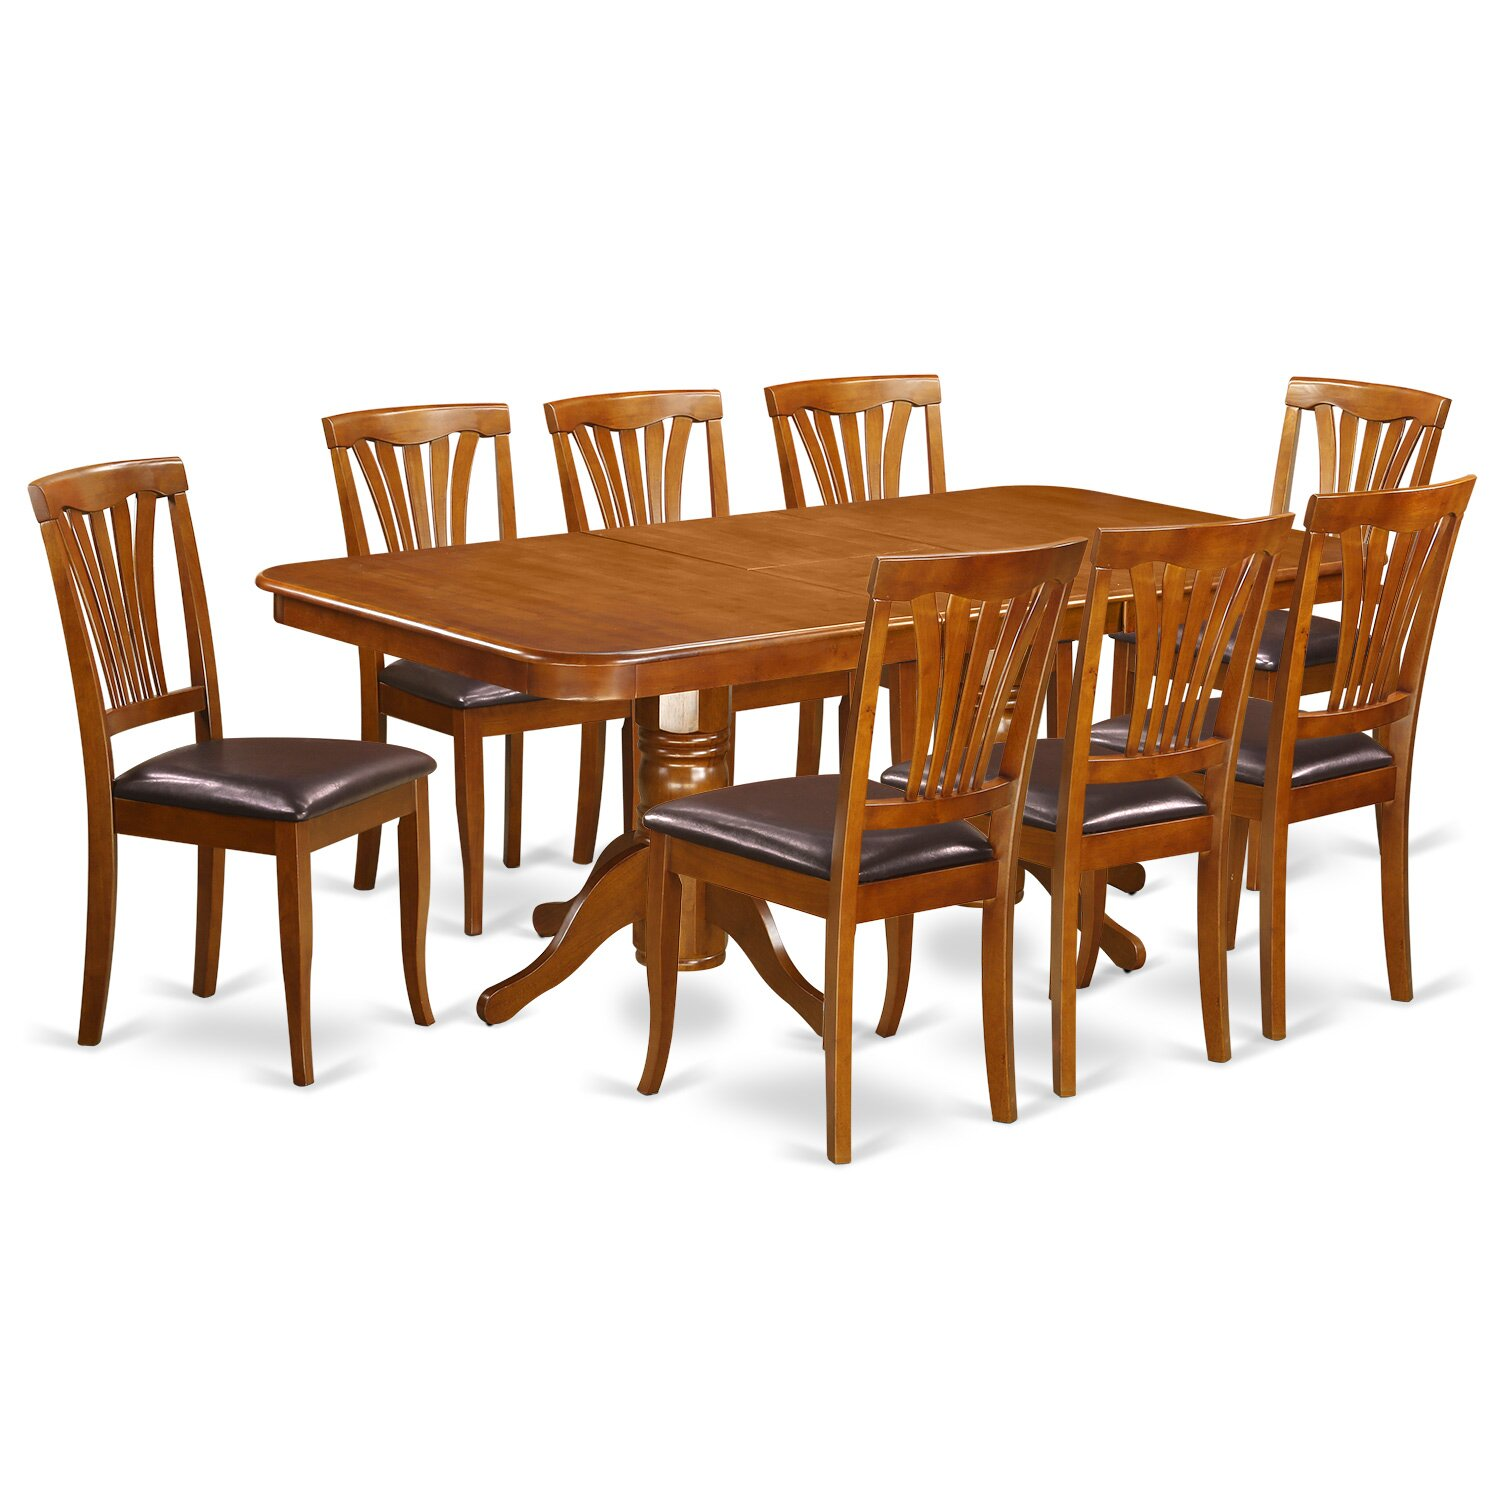 East west napoleon 9 piece dining set reviews wayfair for Dining room tables 9 piece